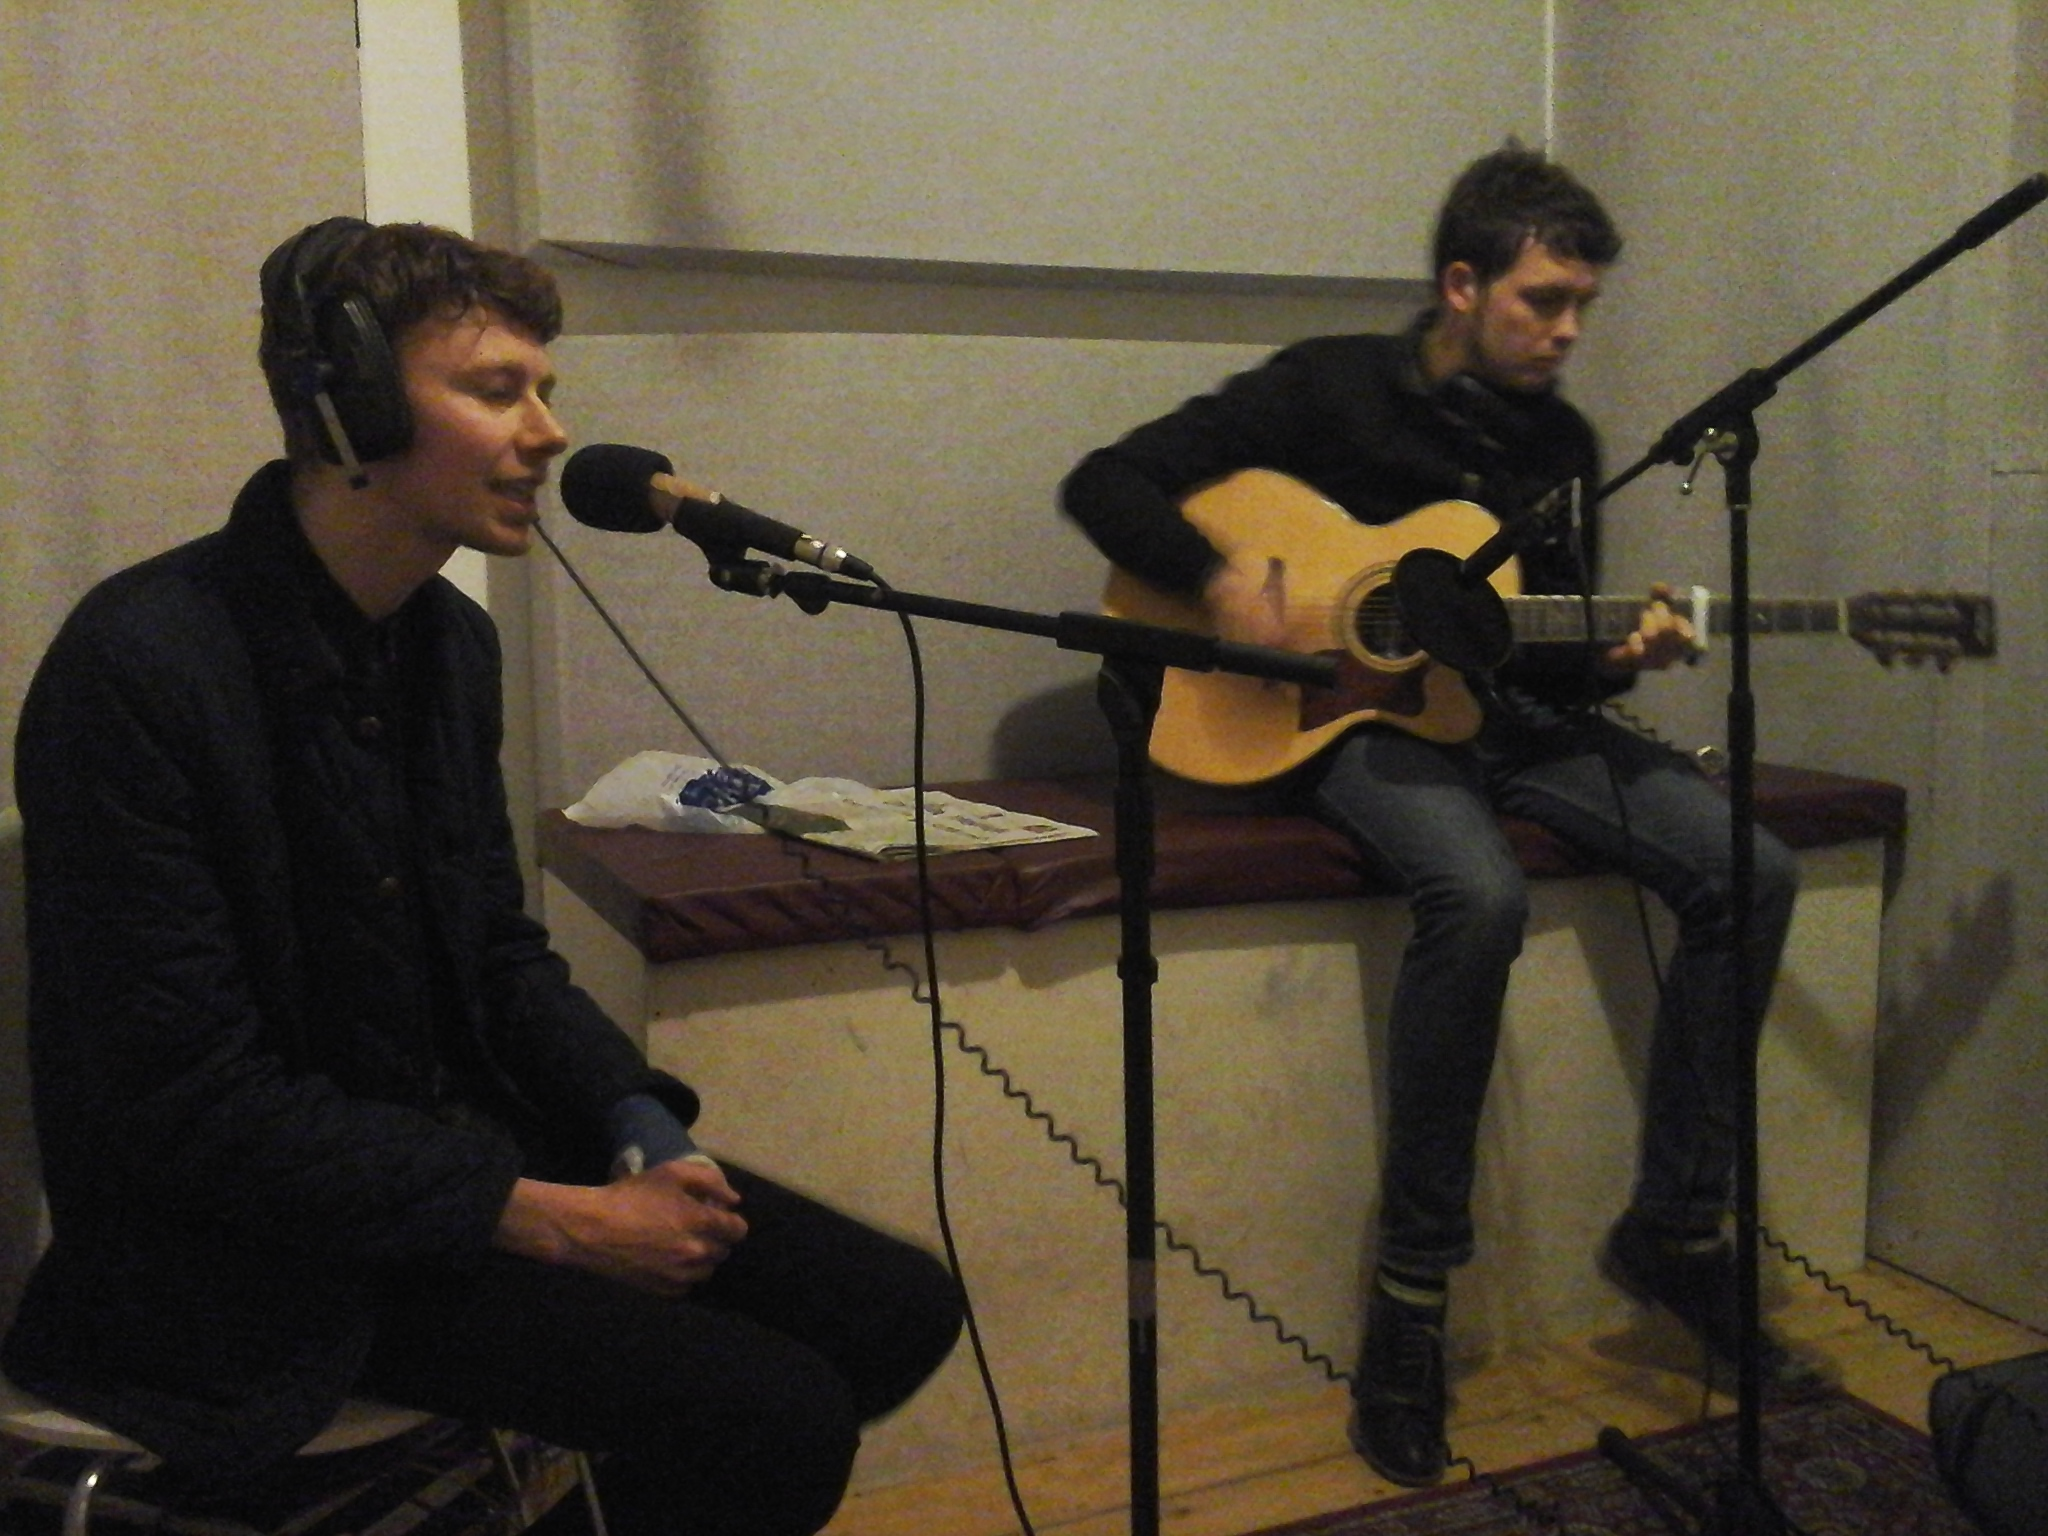 Dan & Niall on Shoreditch Radio